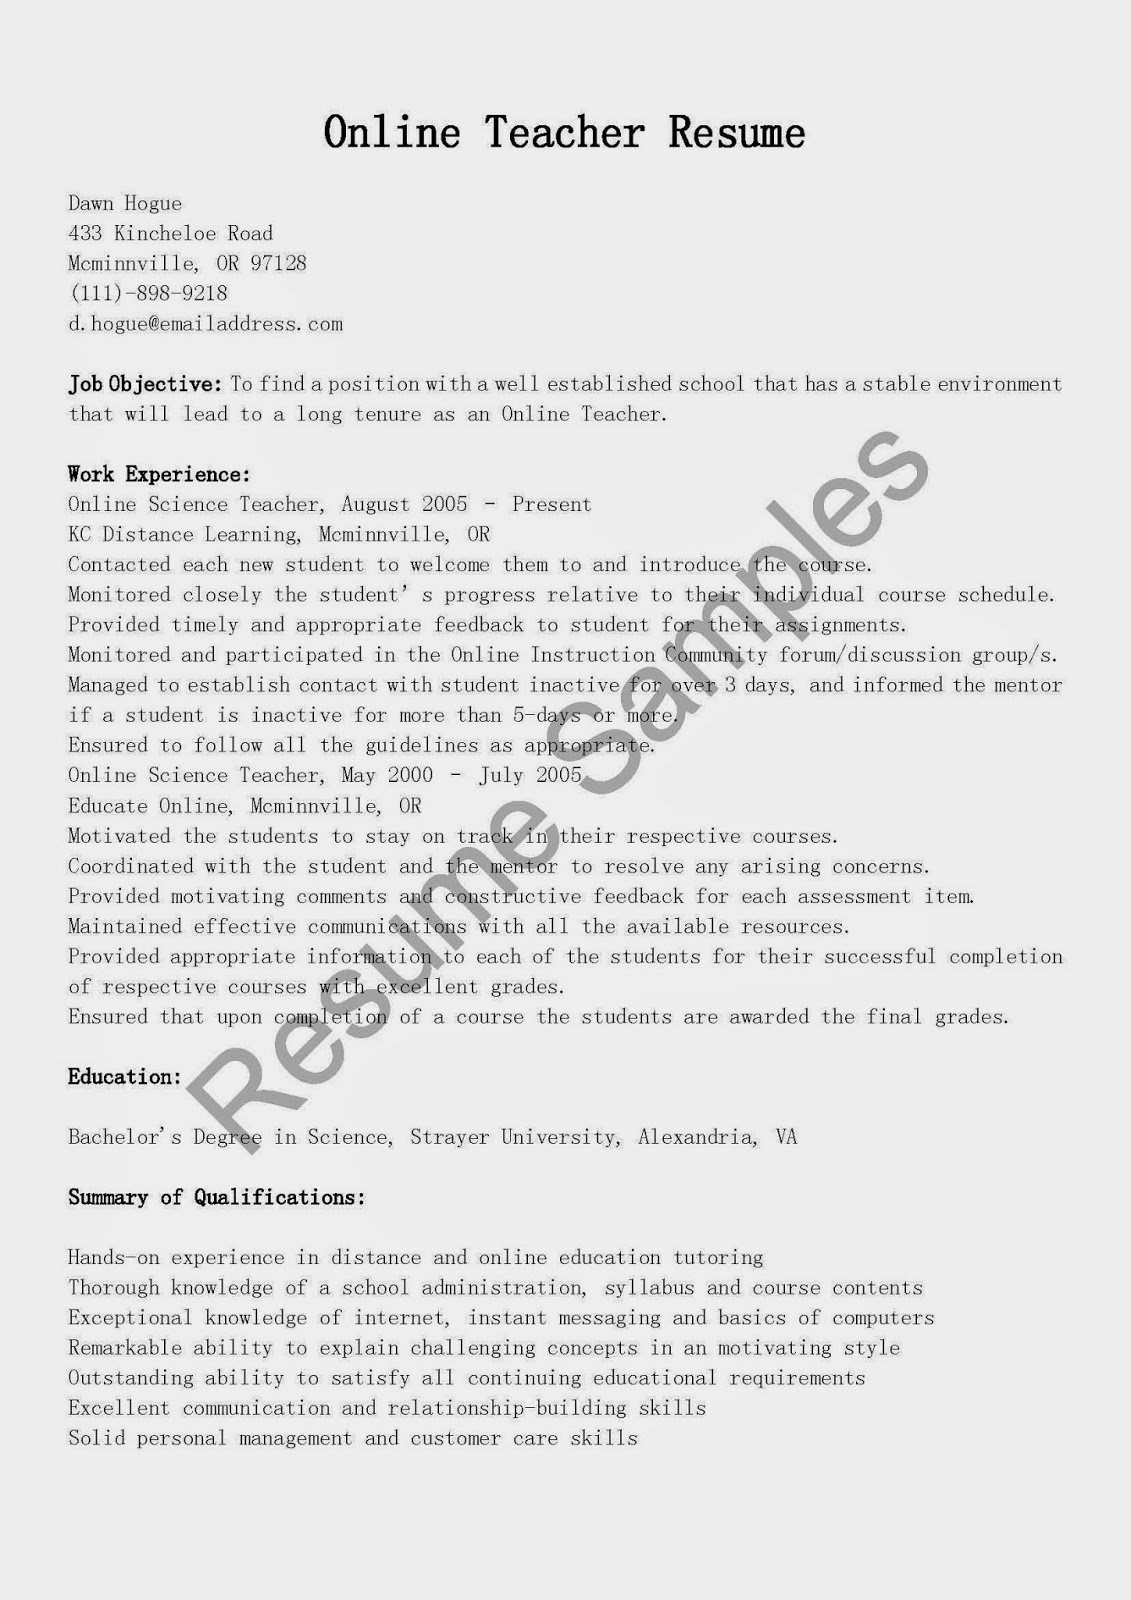 best american essay - columbia university  sample teaching resume canada